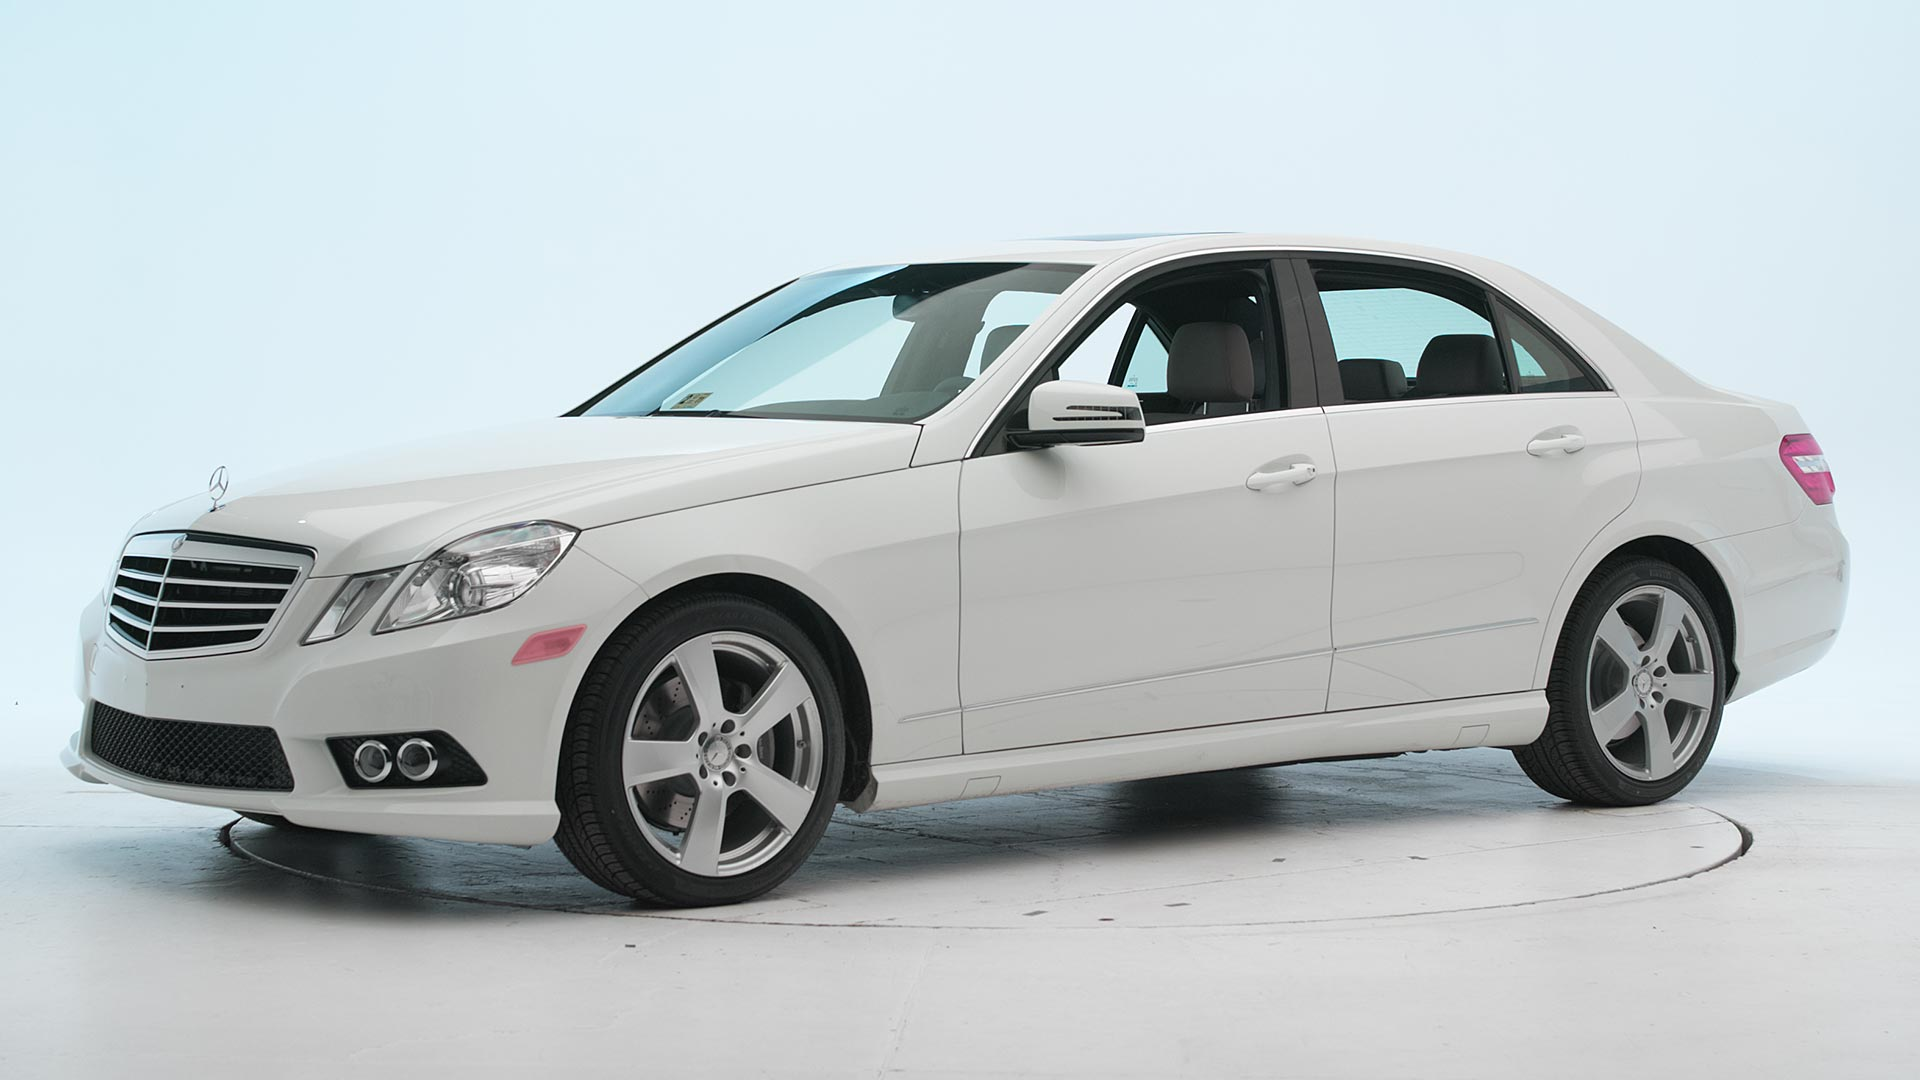 2013 Mercedes-Benz E-Class 4-door sedan